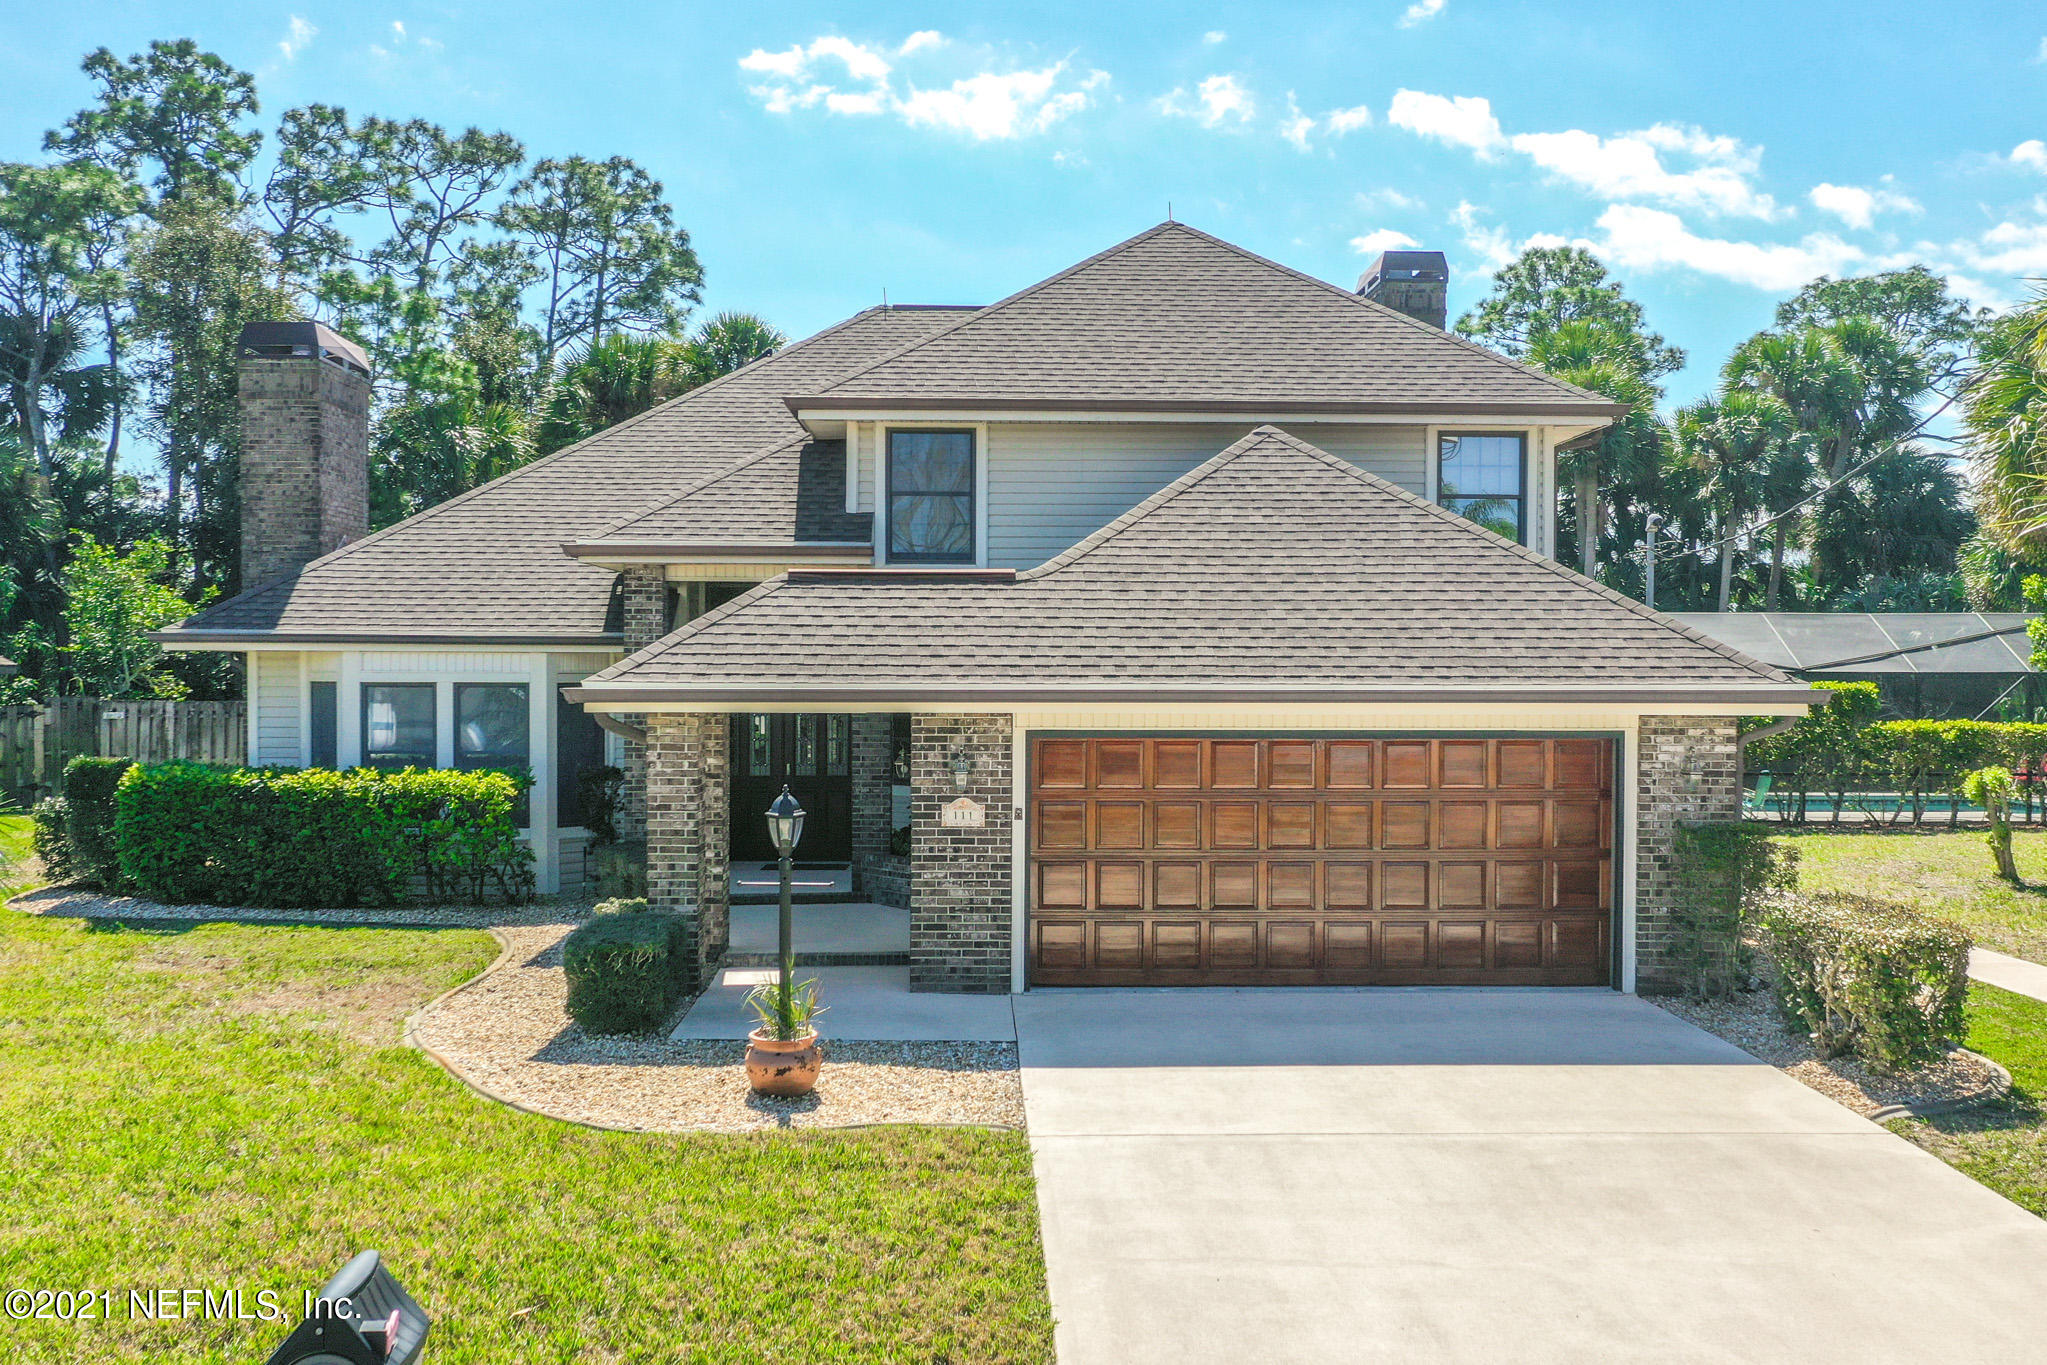 111 COCHISE, PALM COAST, FLORIDA 32137, 4 Bedrooms Bedrooms, ,2 BathroomsBathrooms,Residential,For sale,COCHISE,1096937